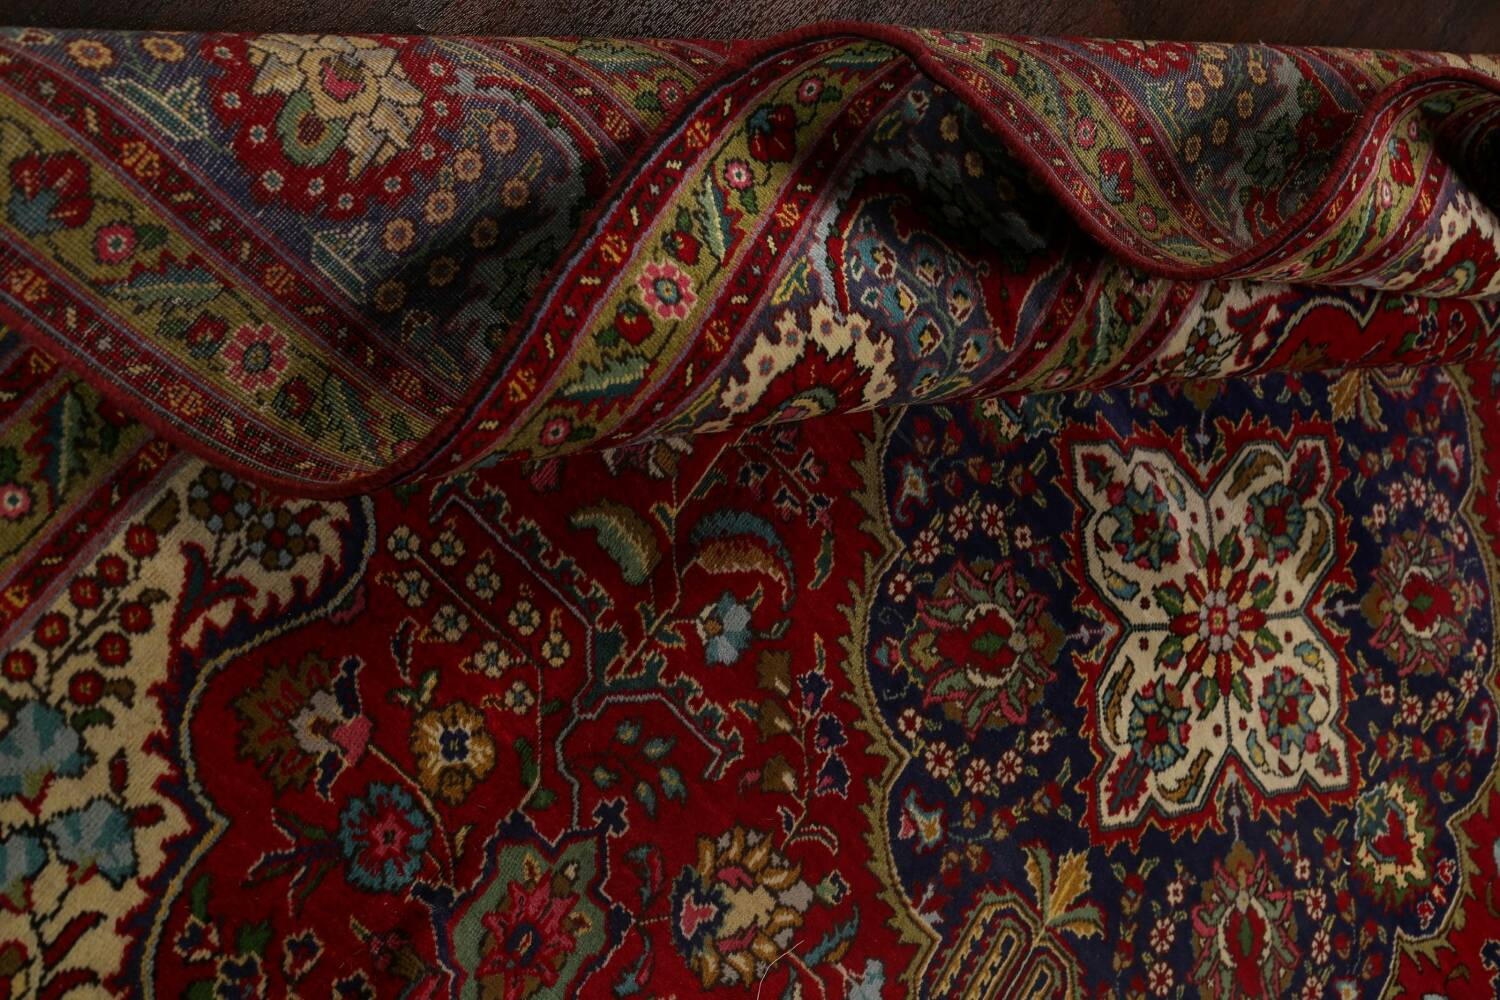 Floral Red Tabriz Persian Area Rug 8x12 image 21